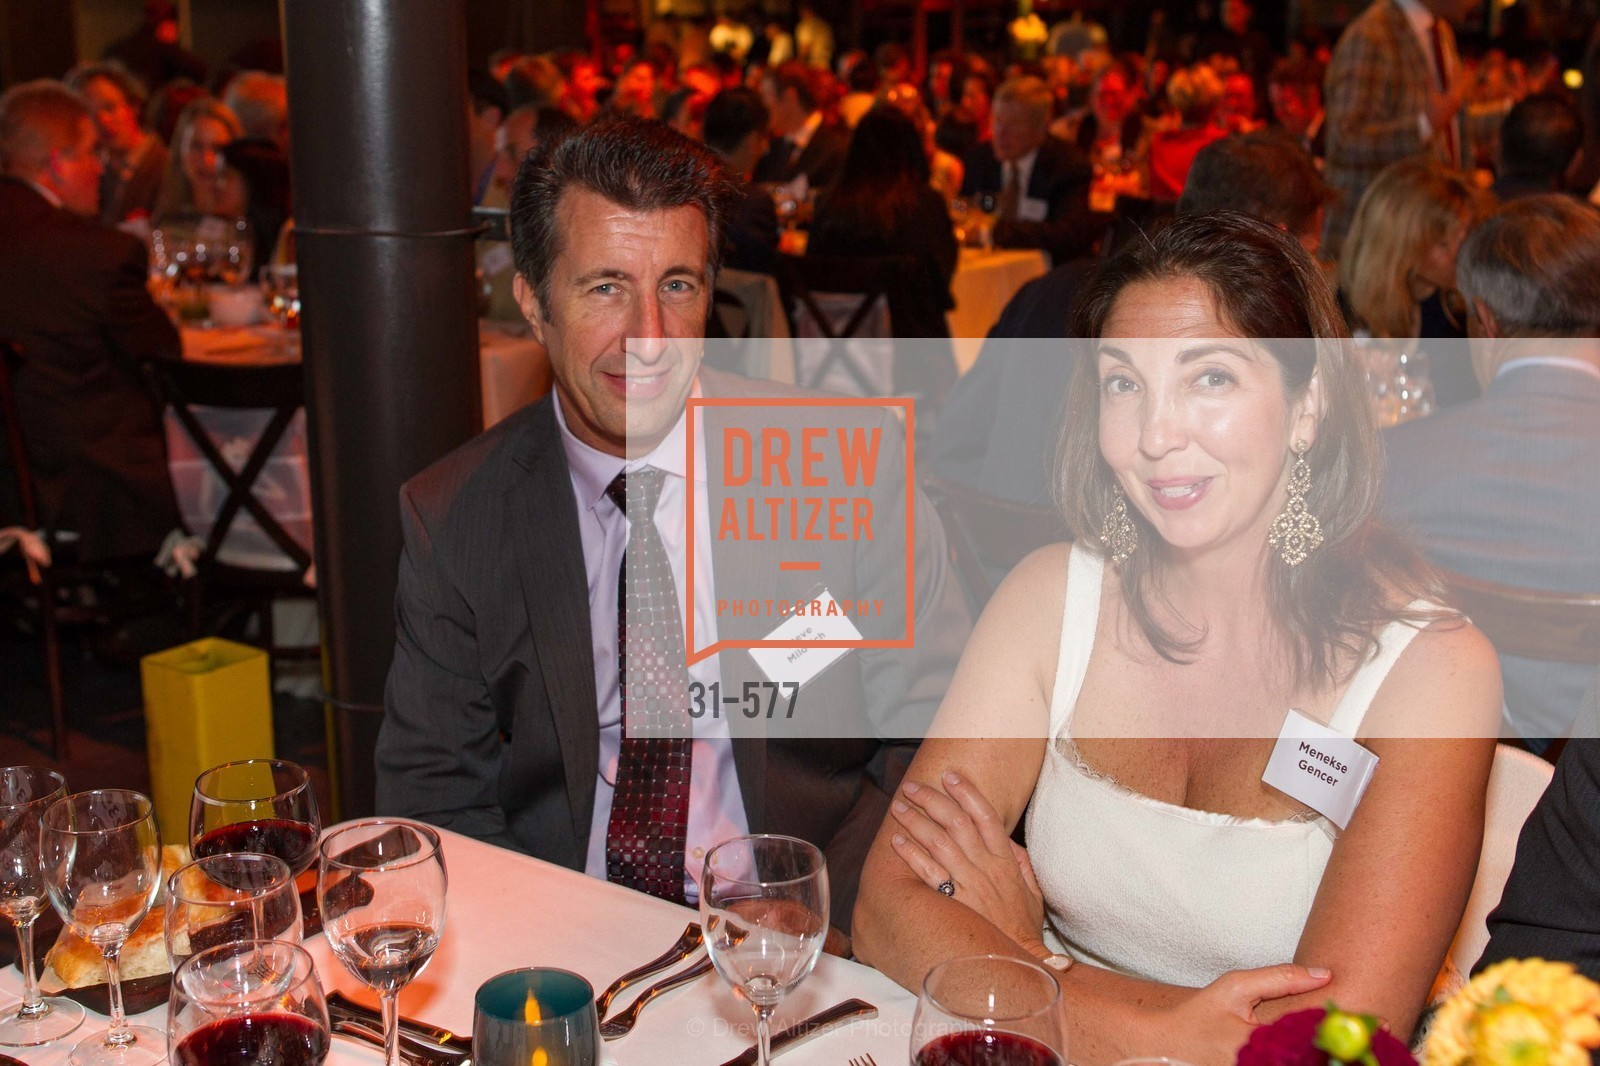 Steve Milovich, Menekse Gencer, SF-MARIN FOOD BANK One Big Table Gala, US, September 27th, 2014,Drew Altizer, Drew Altizer Photography, full-service agency, private events, San Francisco photographer, photographer california